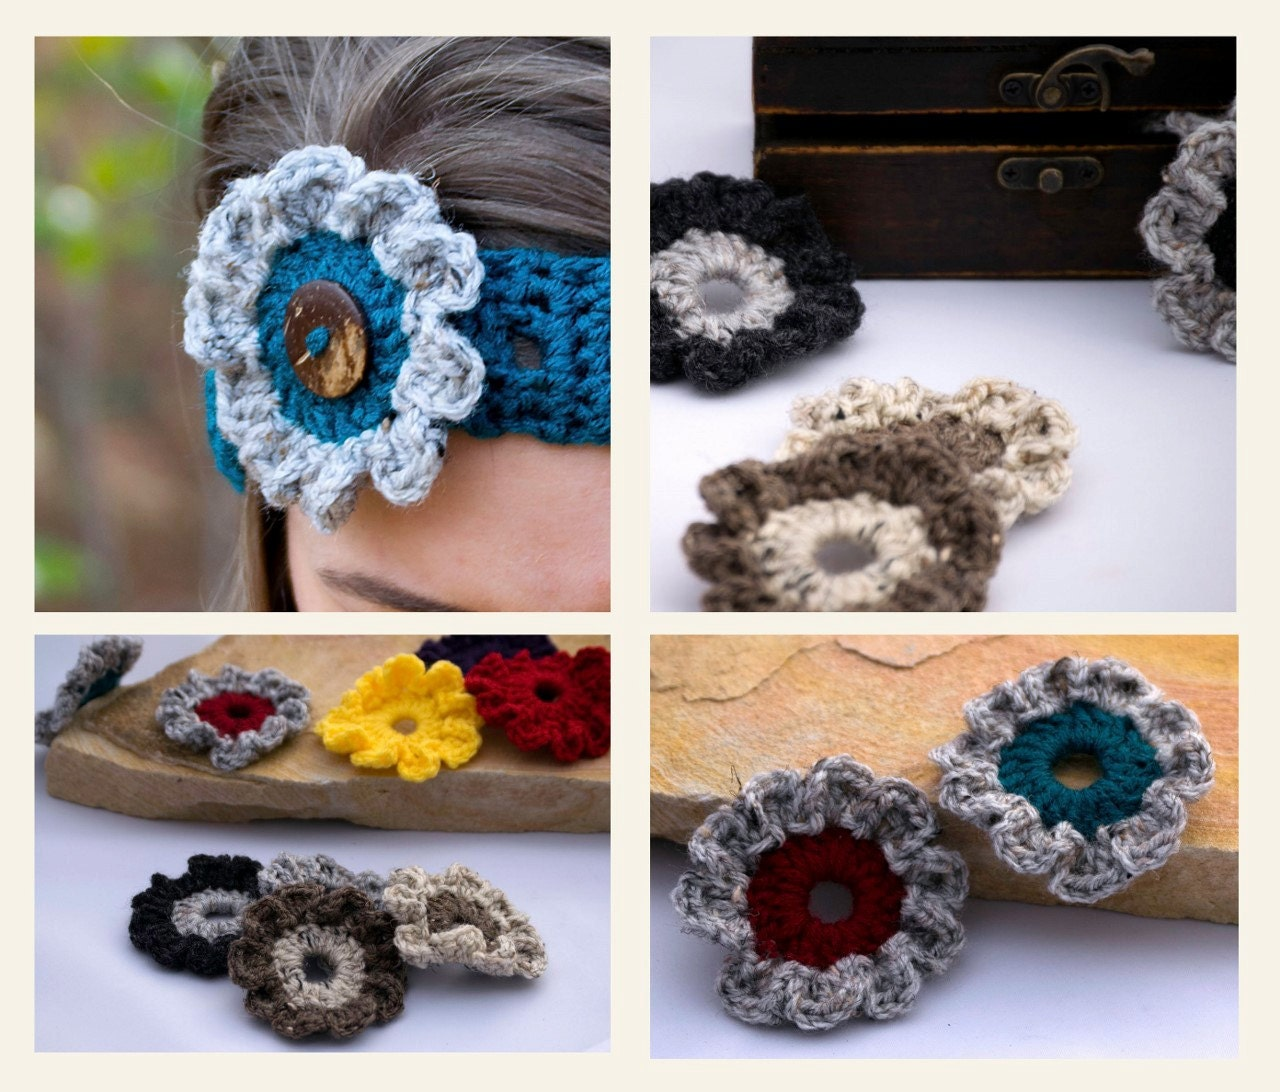 4 crochet flowers 3d craft appliqu s small hat flower for Small flowers for crafts